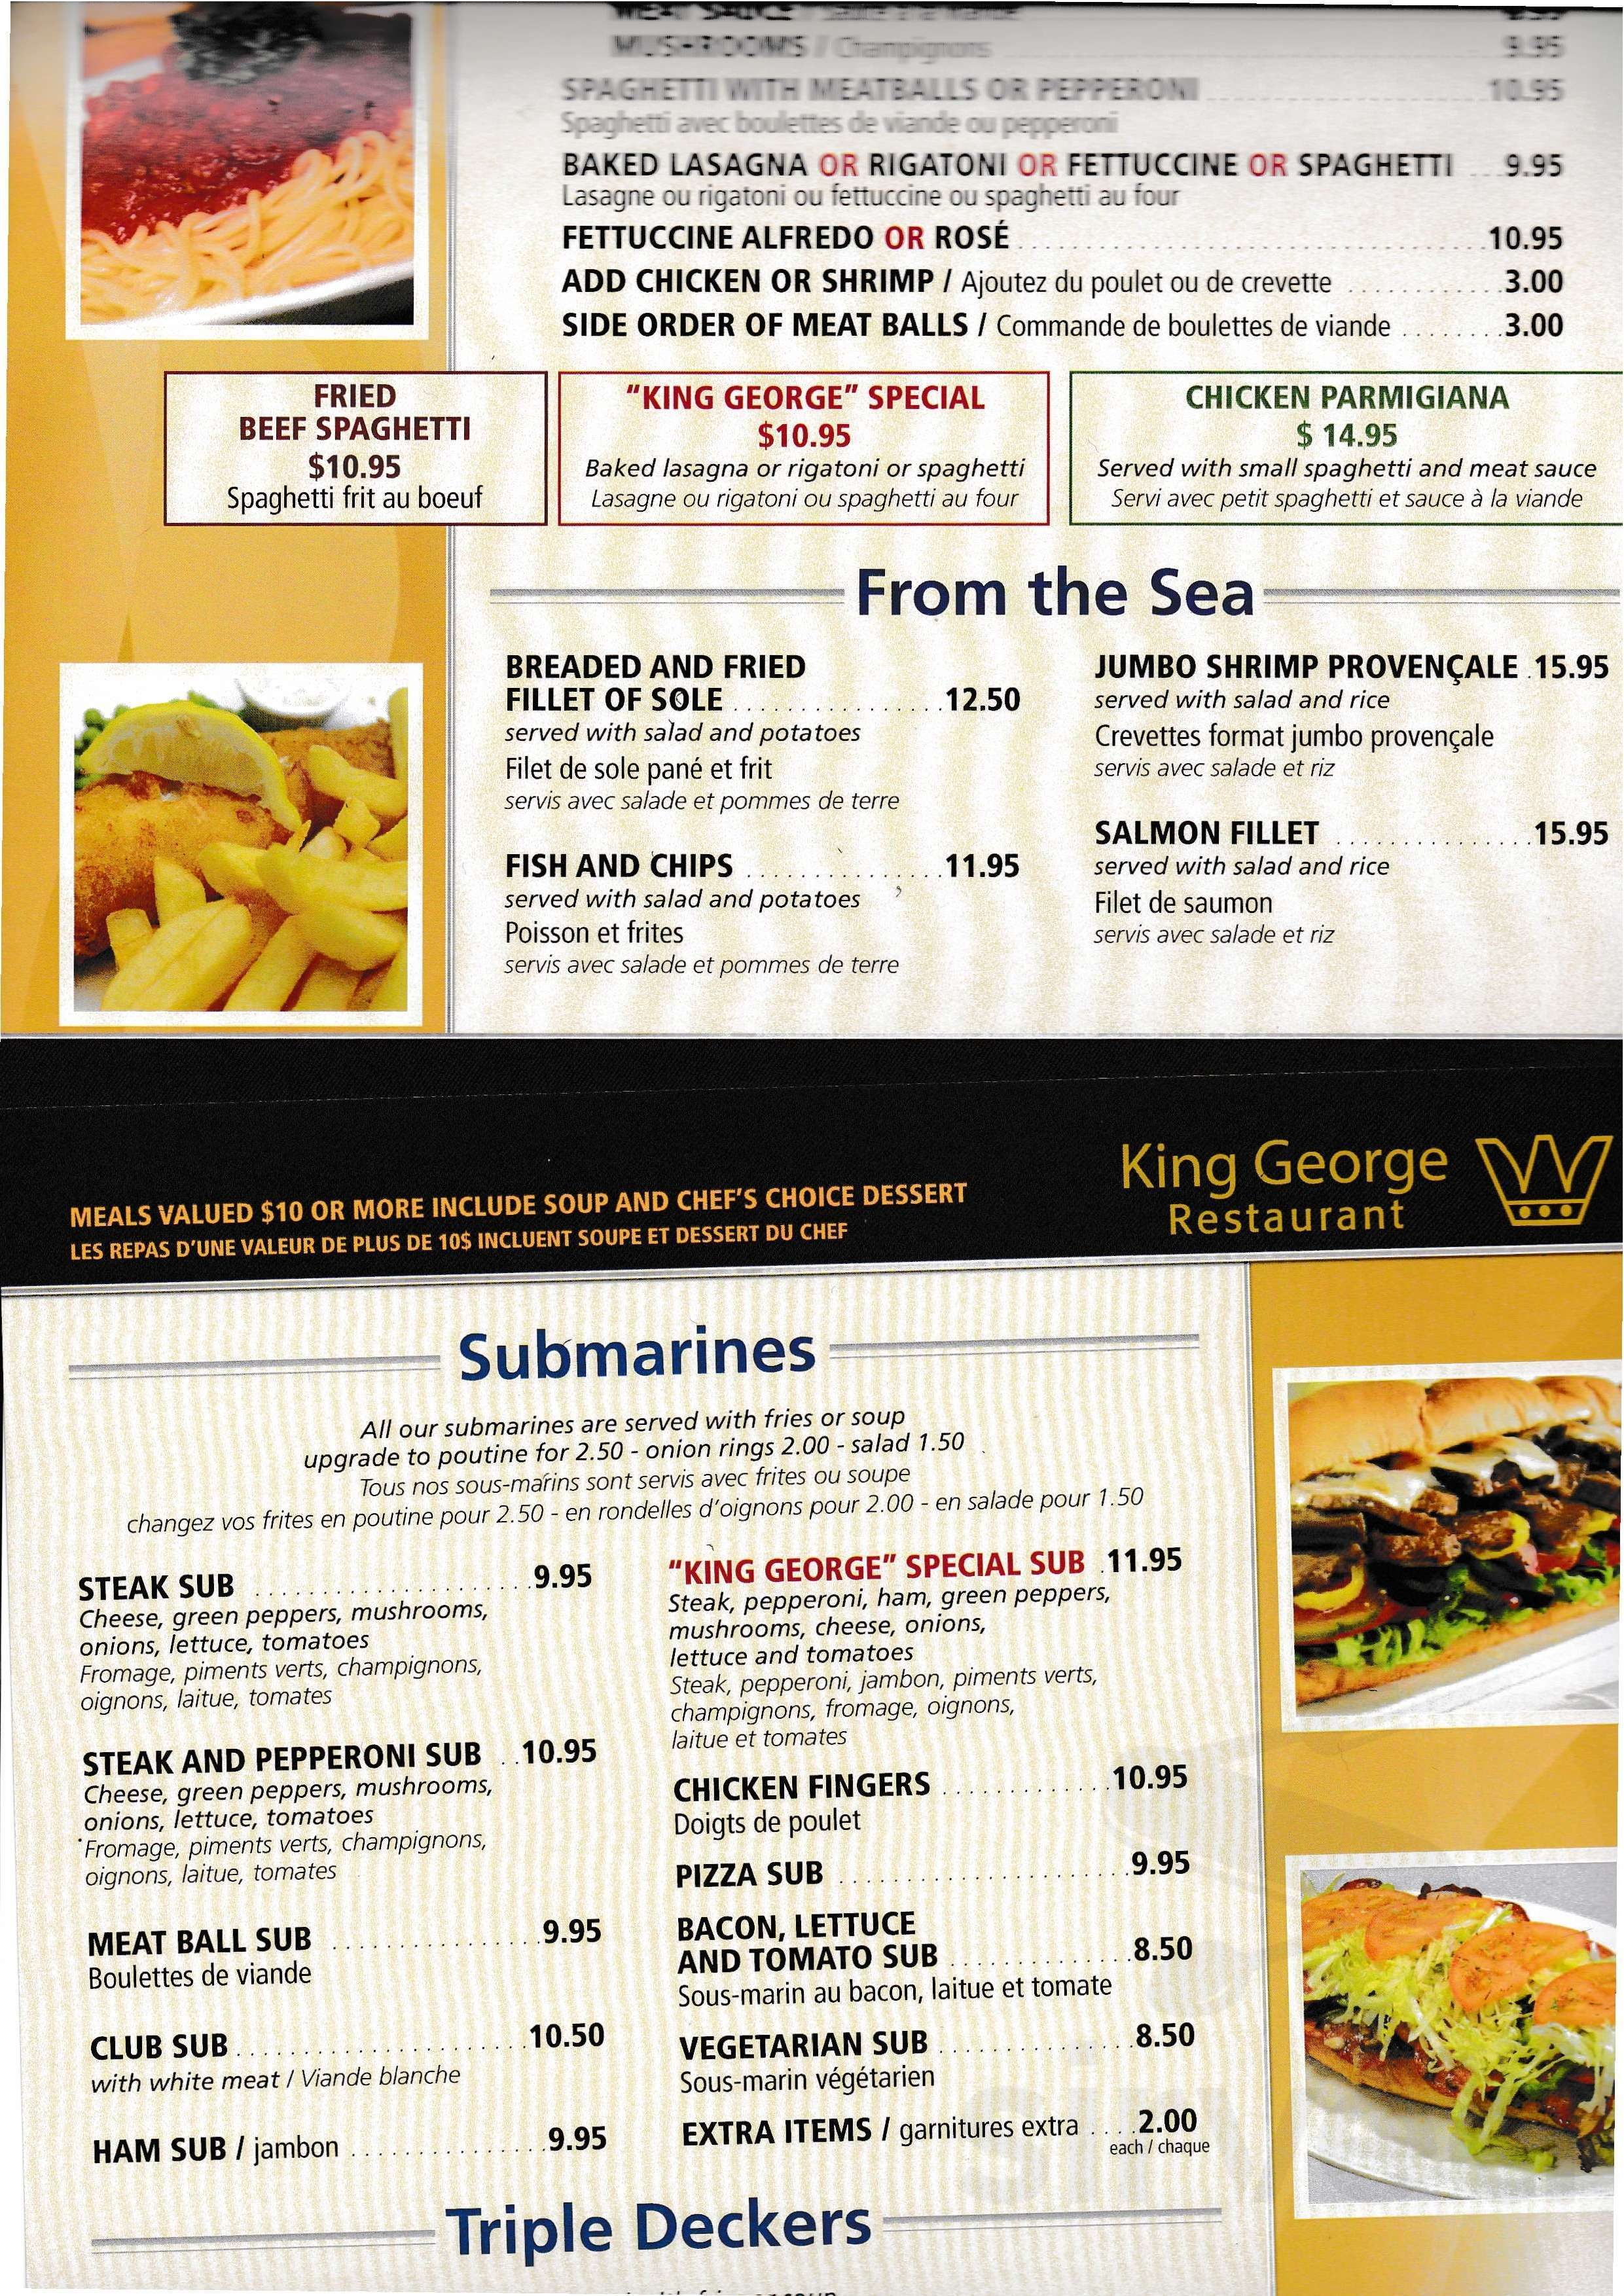 Rondelle D Oignon Sous Le Pied menu for king george in cornwall, ontario, canada